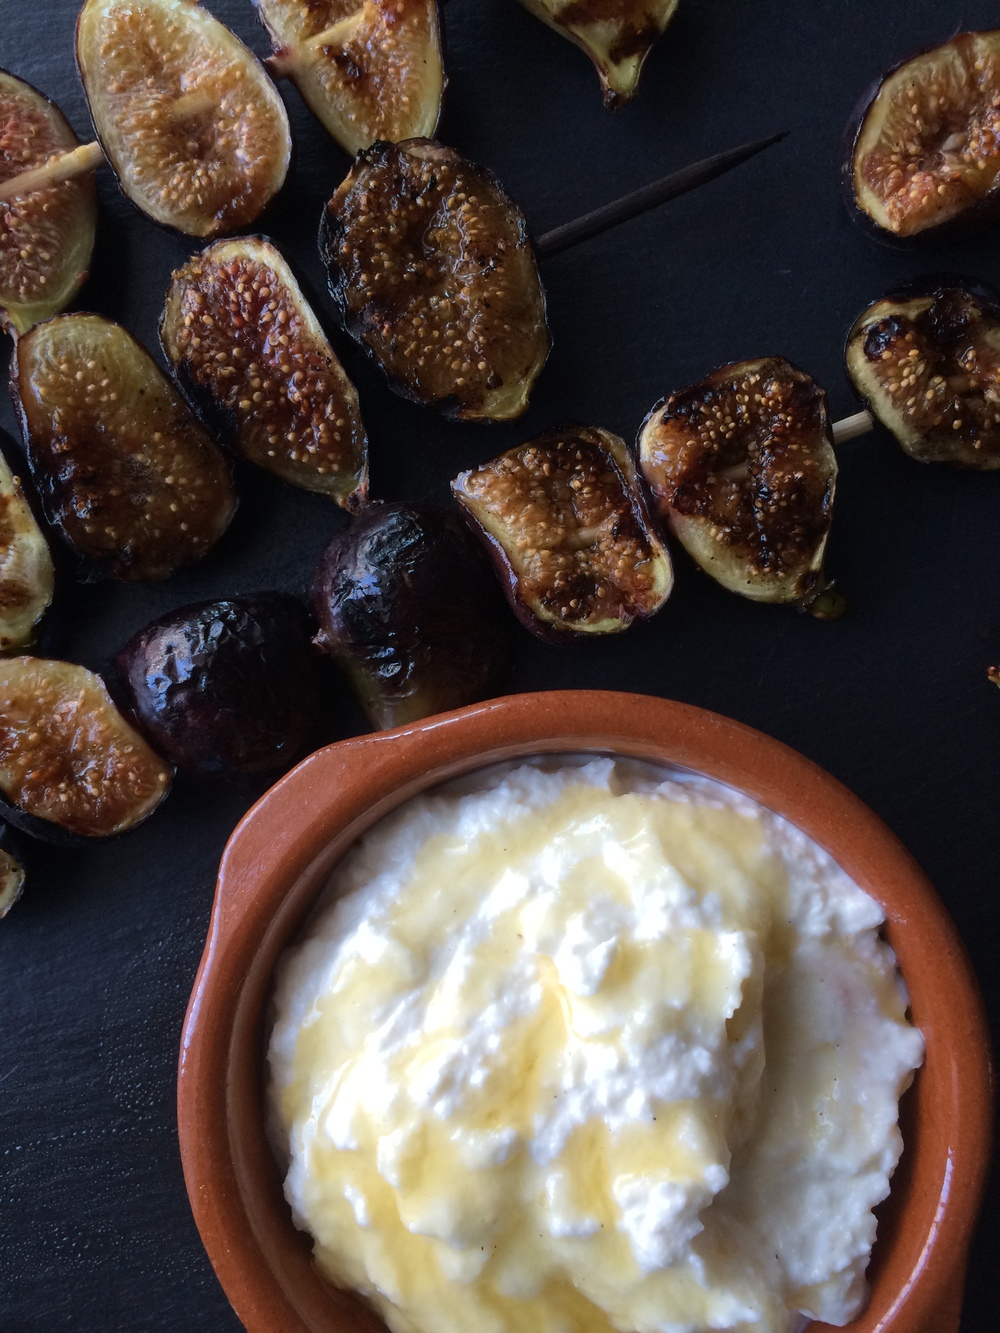 grilled figs ricotta 2.JPG